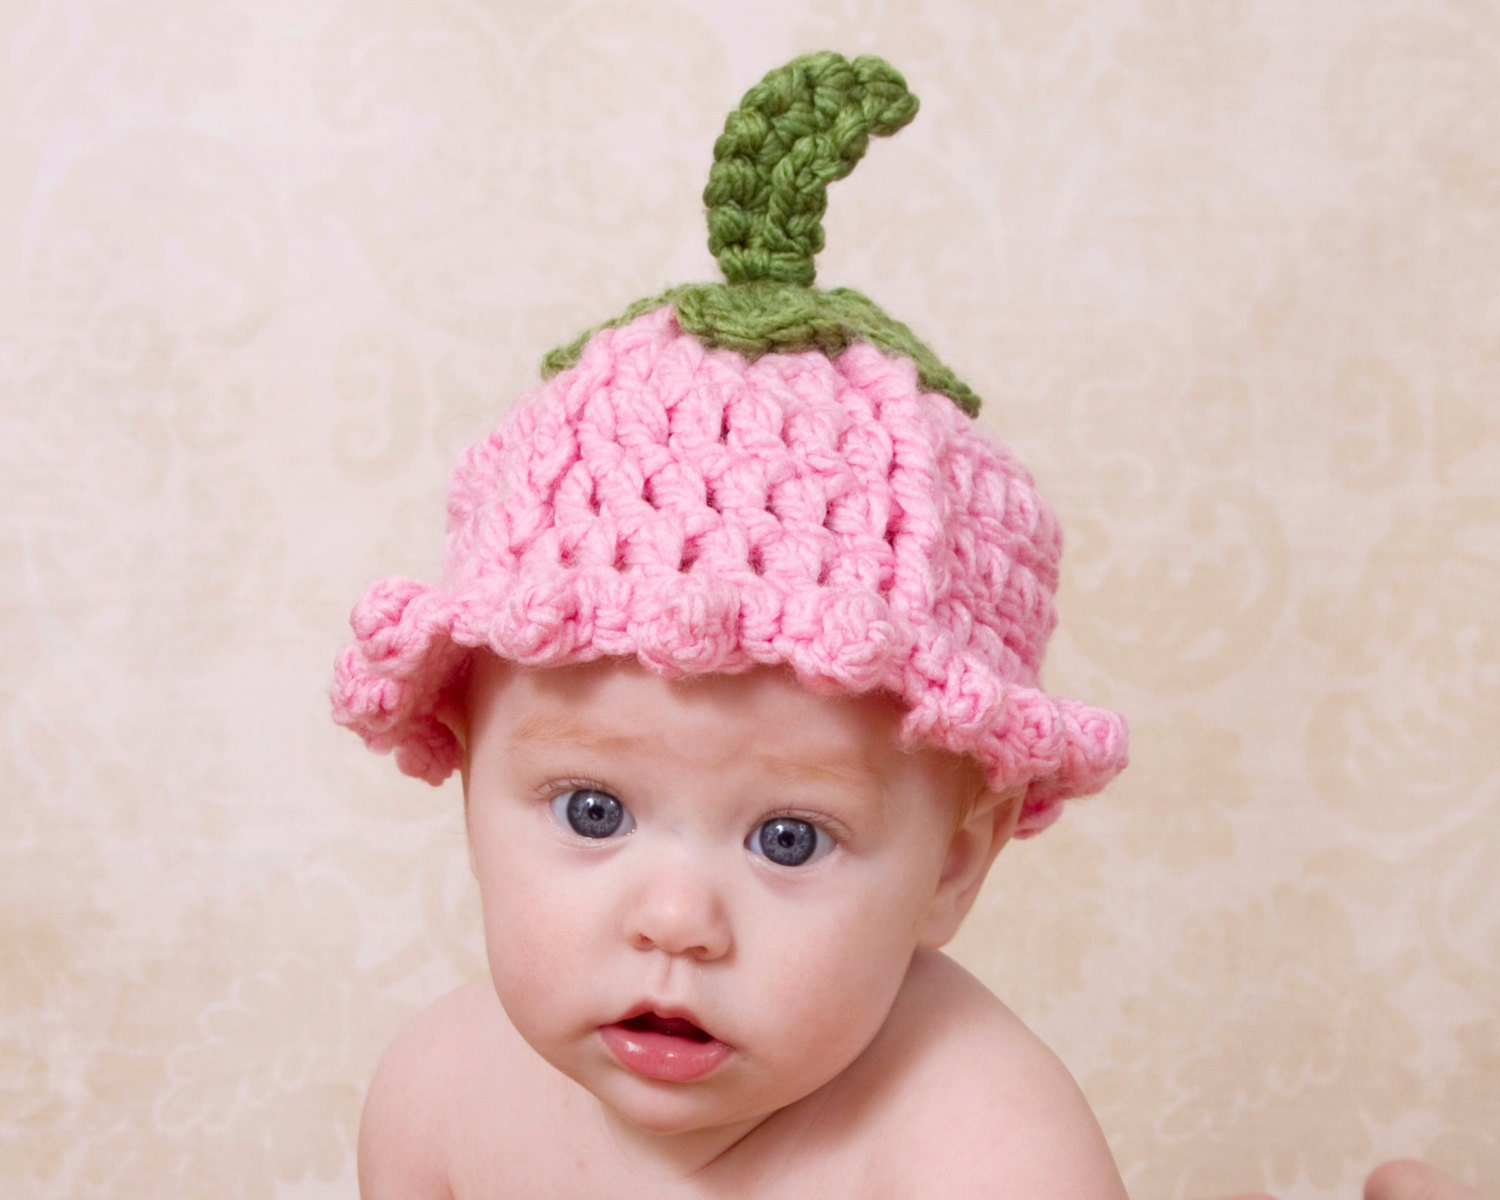 Crochet Flower Pattern For Baby Hat : Pattern Flower Baby Hat Tulip Crochet Pattern Quick Flower